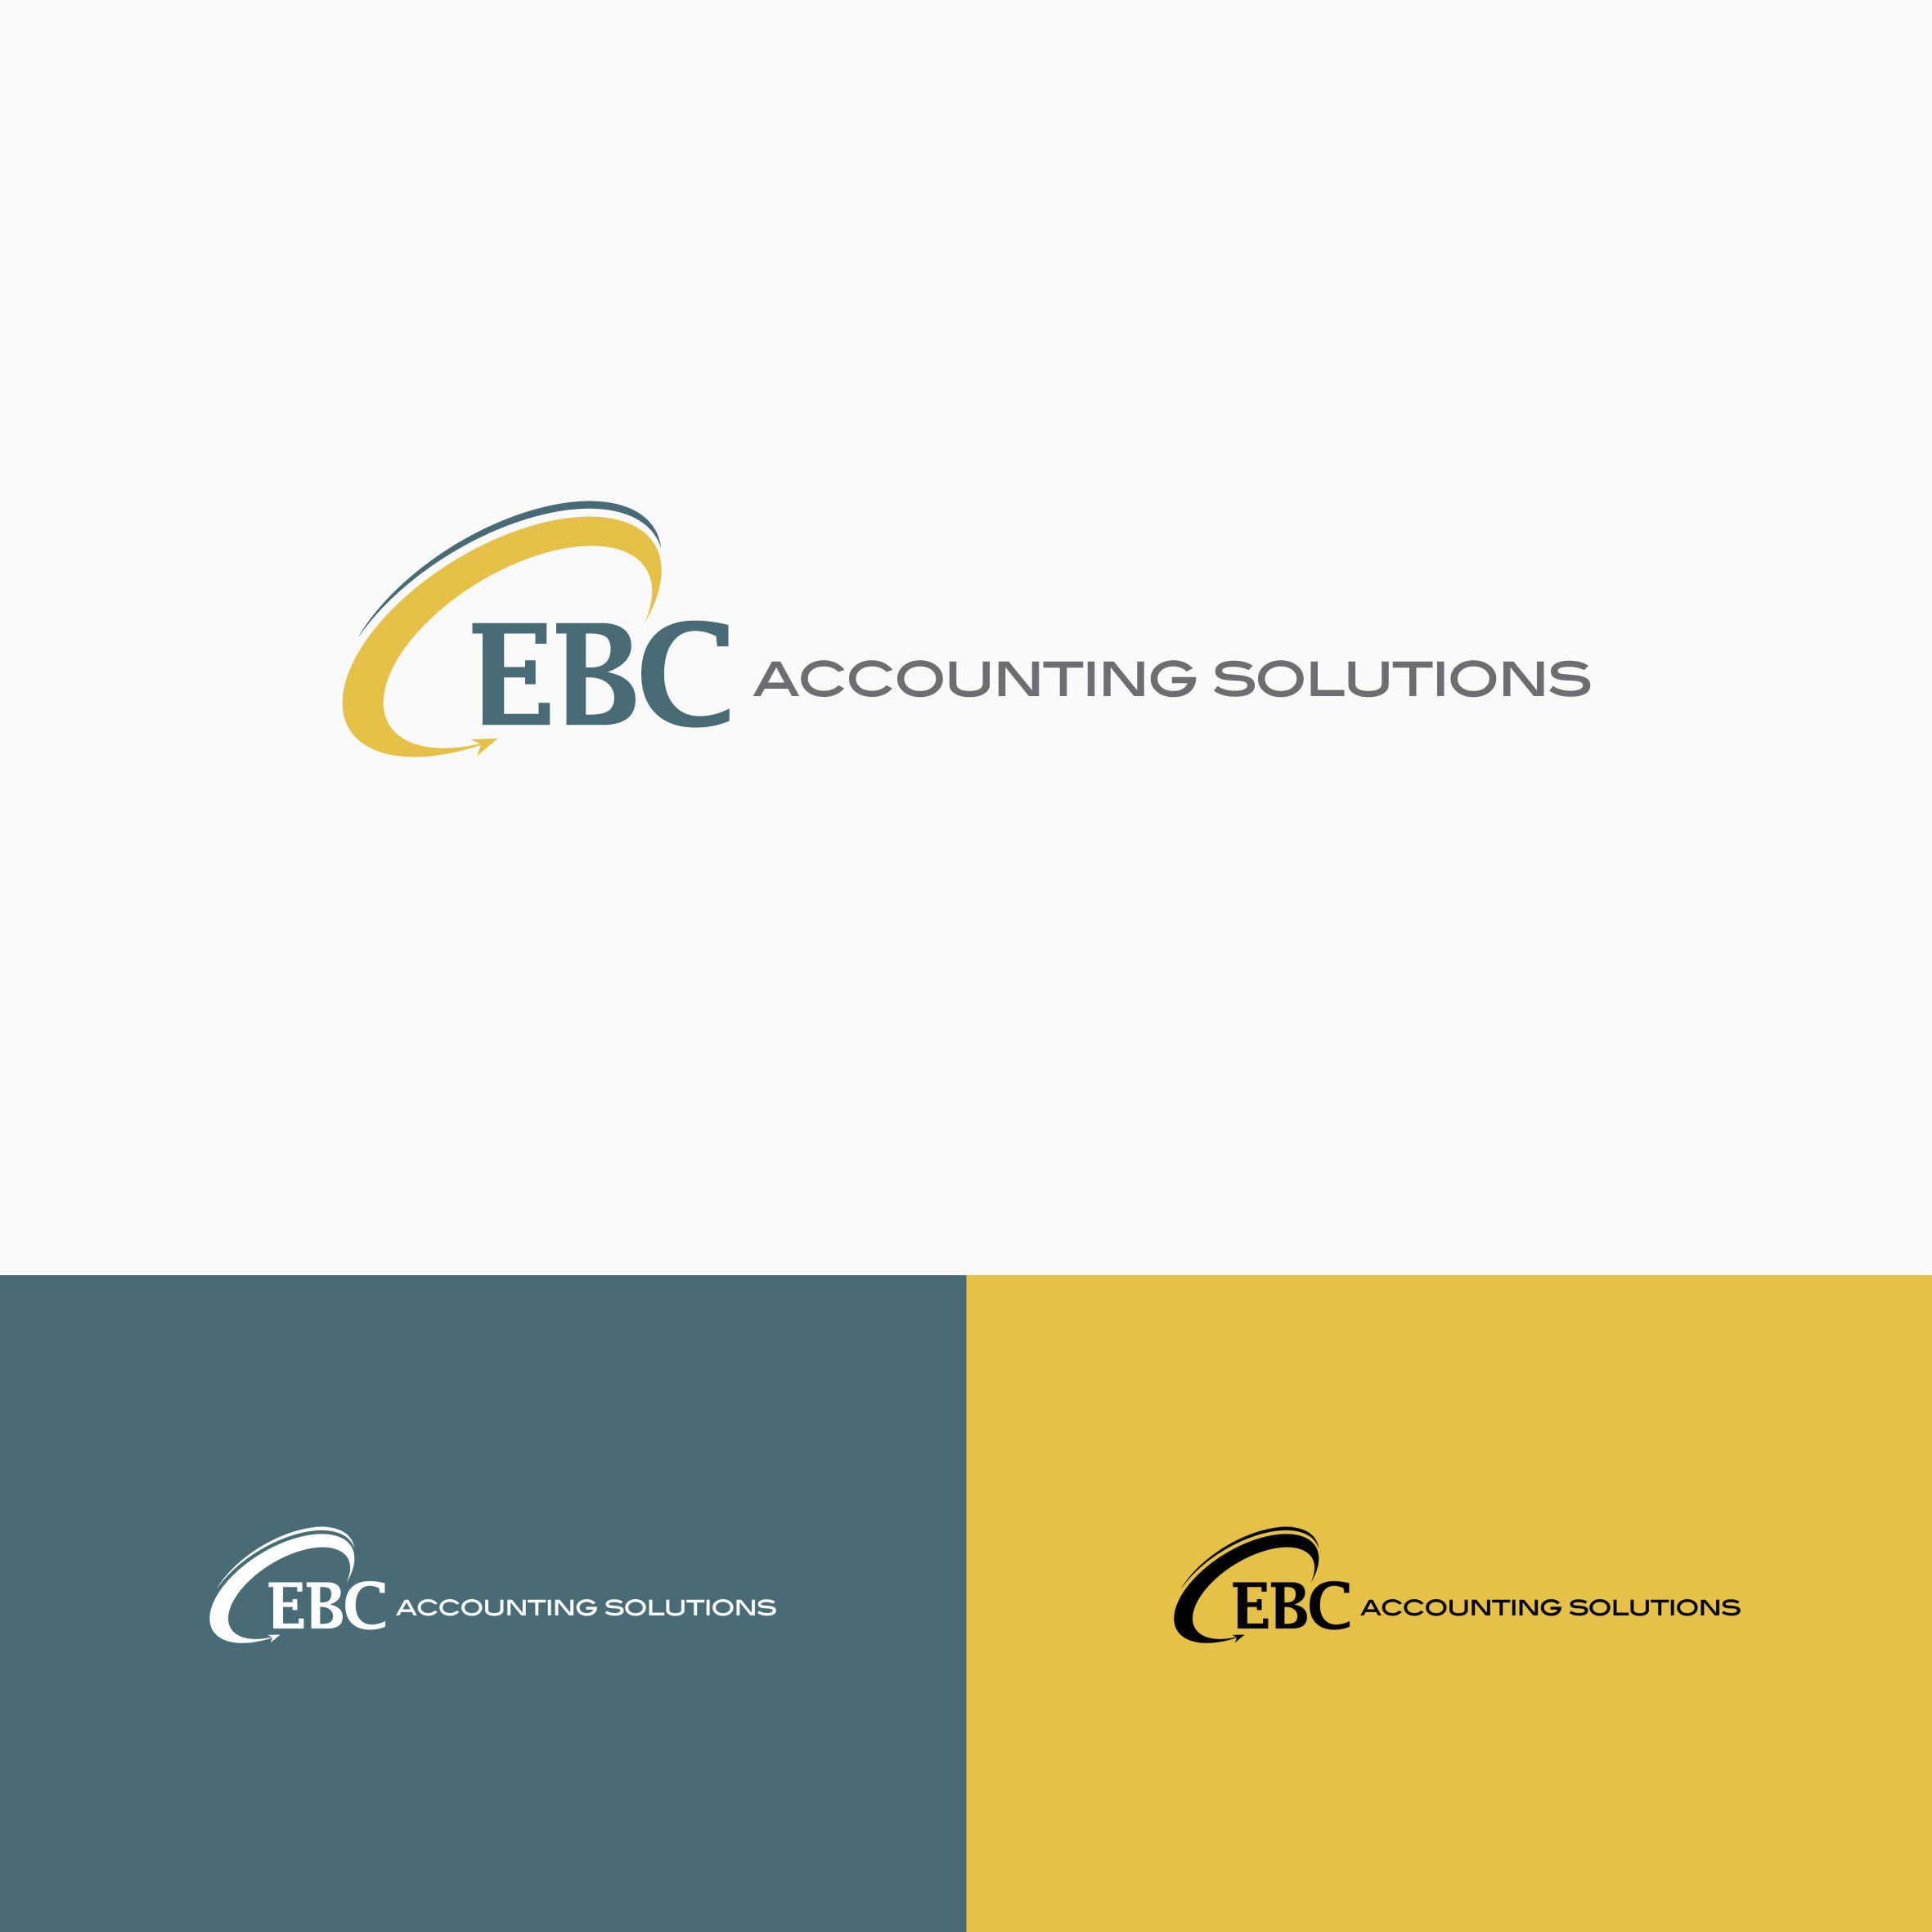 Logo Design by tanganpanas - Entry No. 146 in the Logo Design Contest New Logo Design for EBC Accounting Solutions.